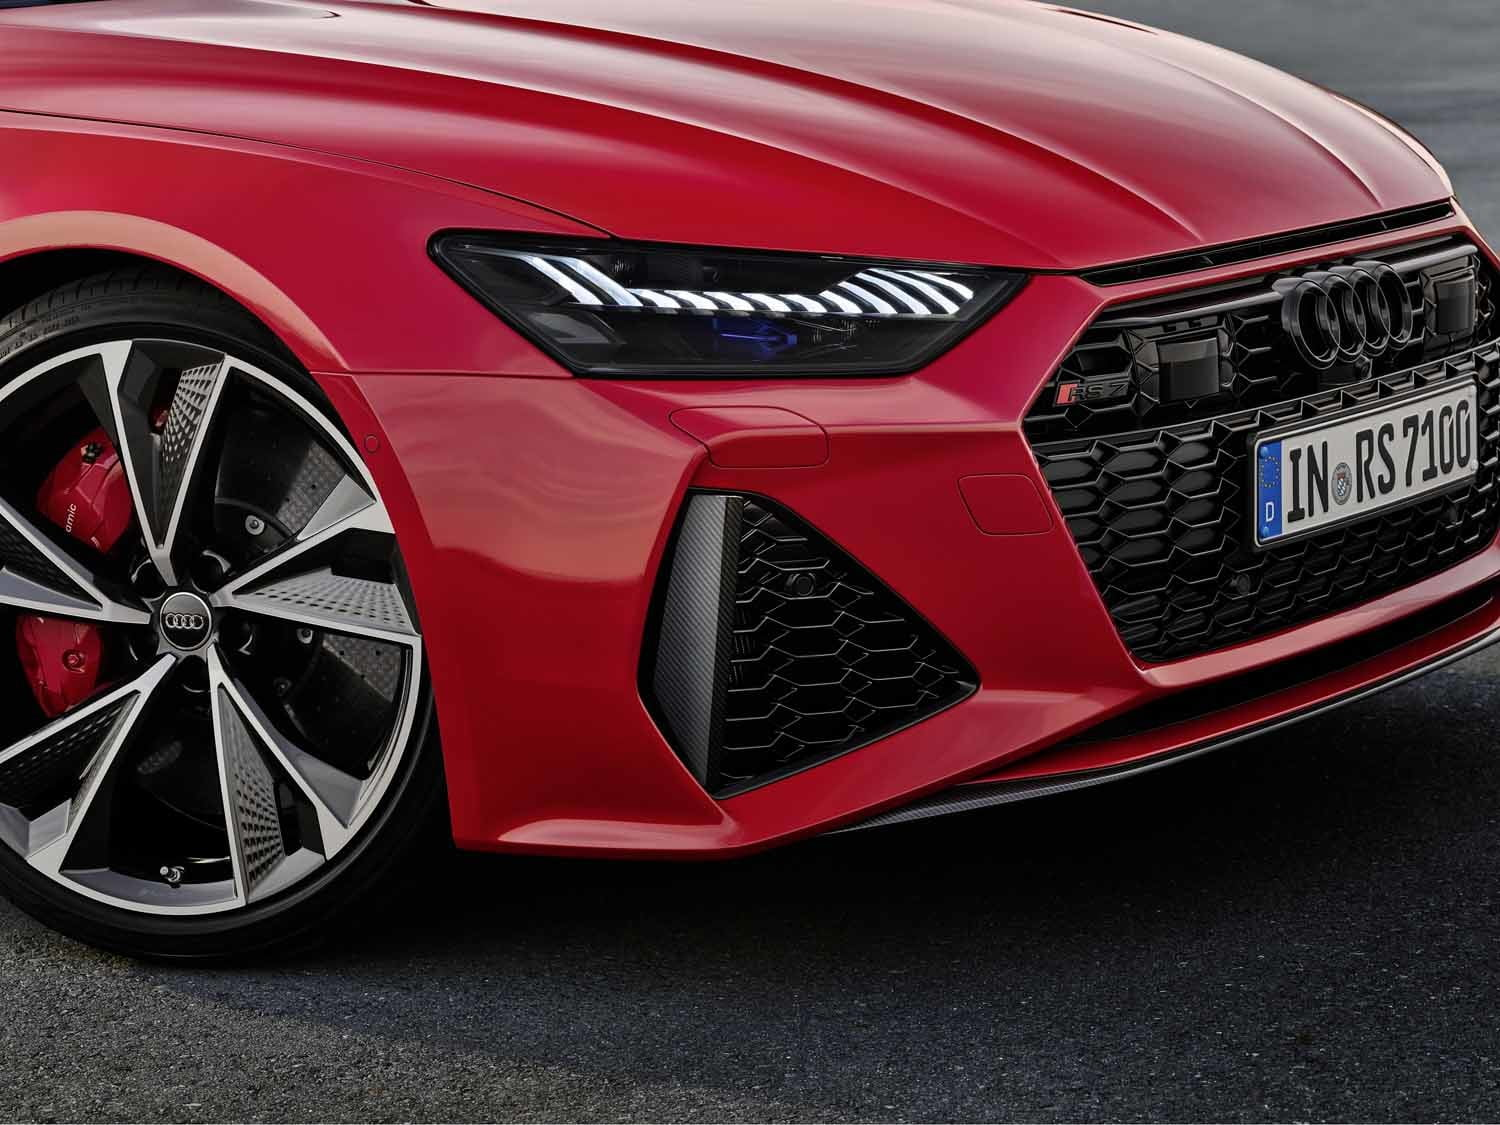 2020 audi rs 7 sportback packs 600 horsepower intuitive infotainment system 9